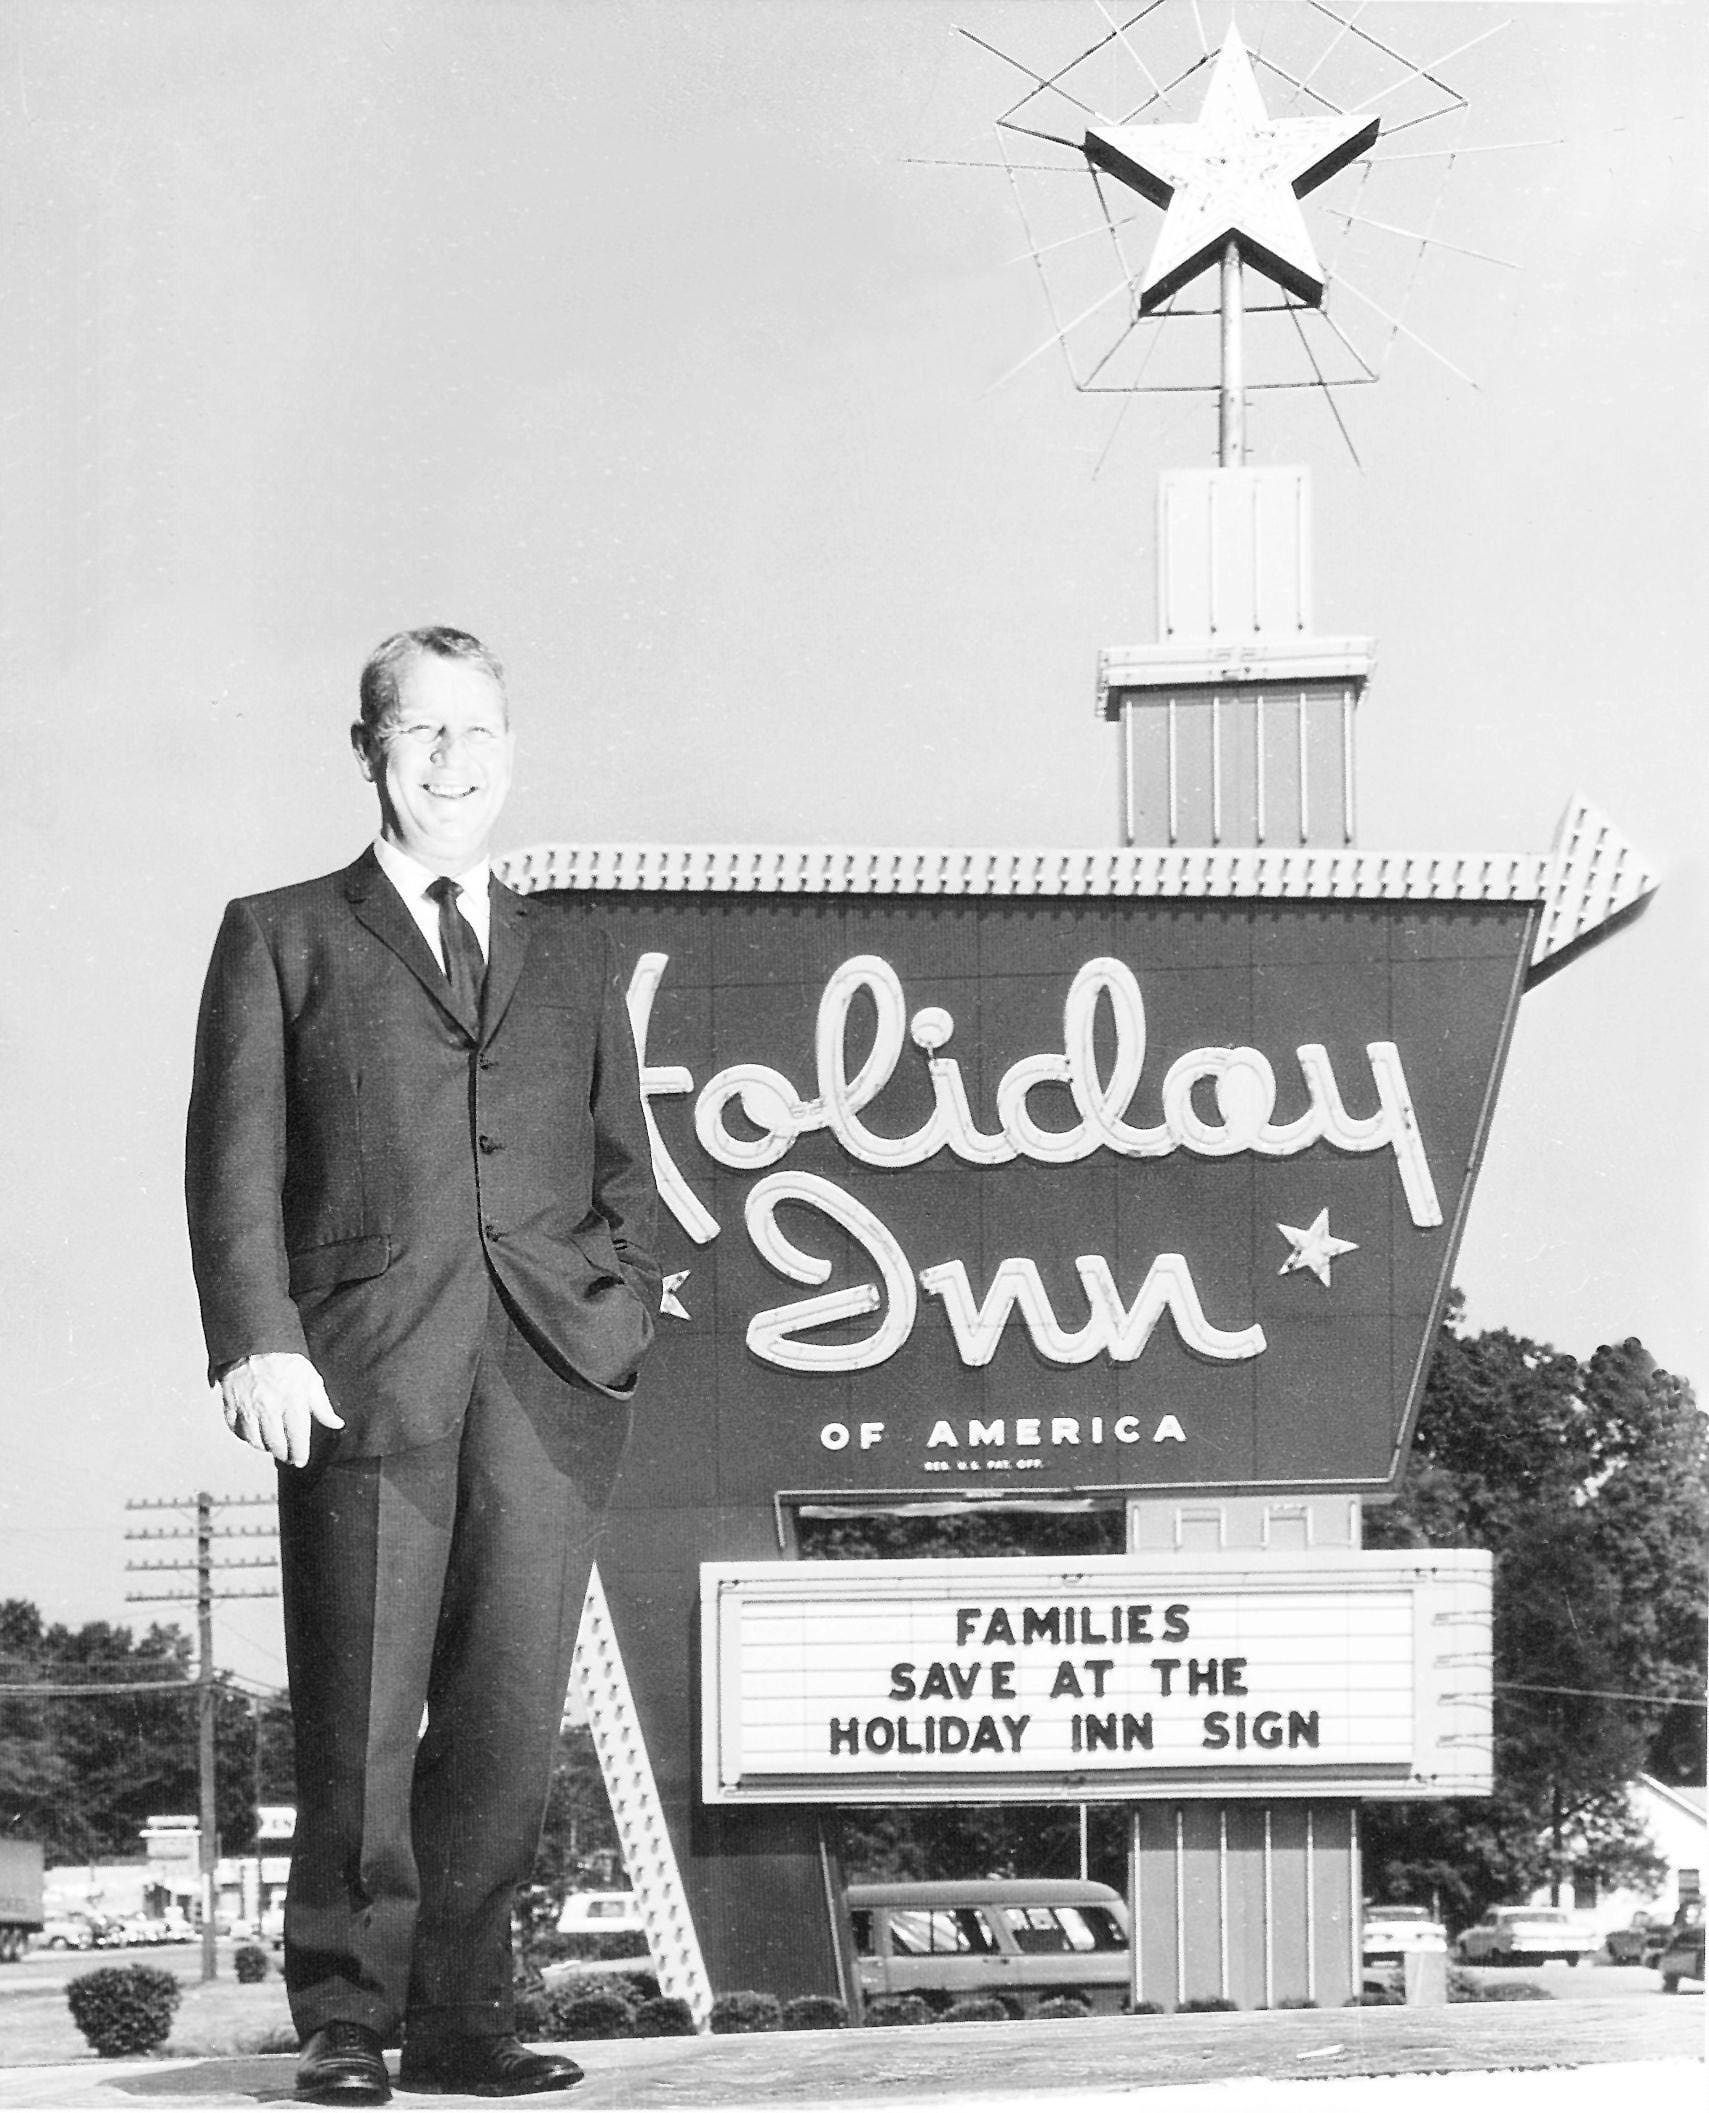 Pin By Cade Peeper On Mylocalsoul Holiday Inn Memphis Tennessee Memphis City